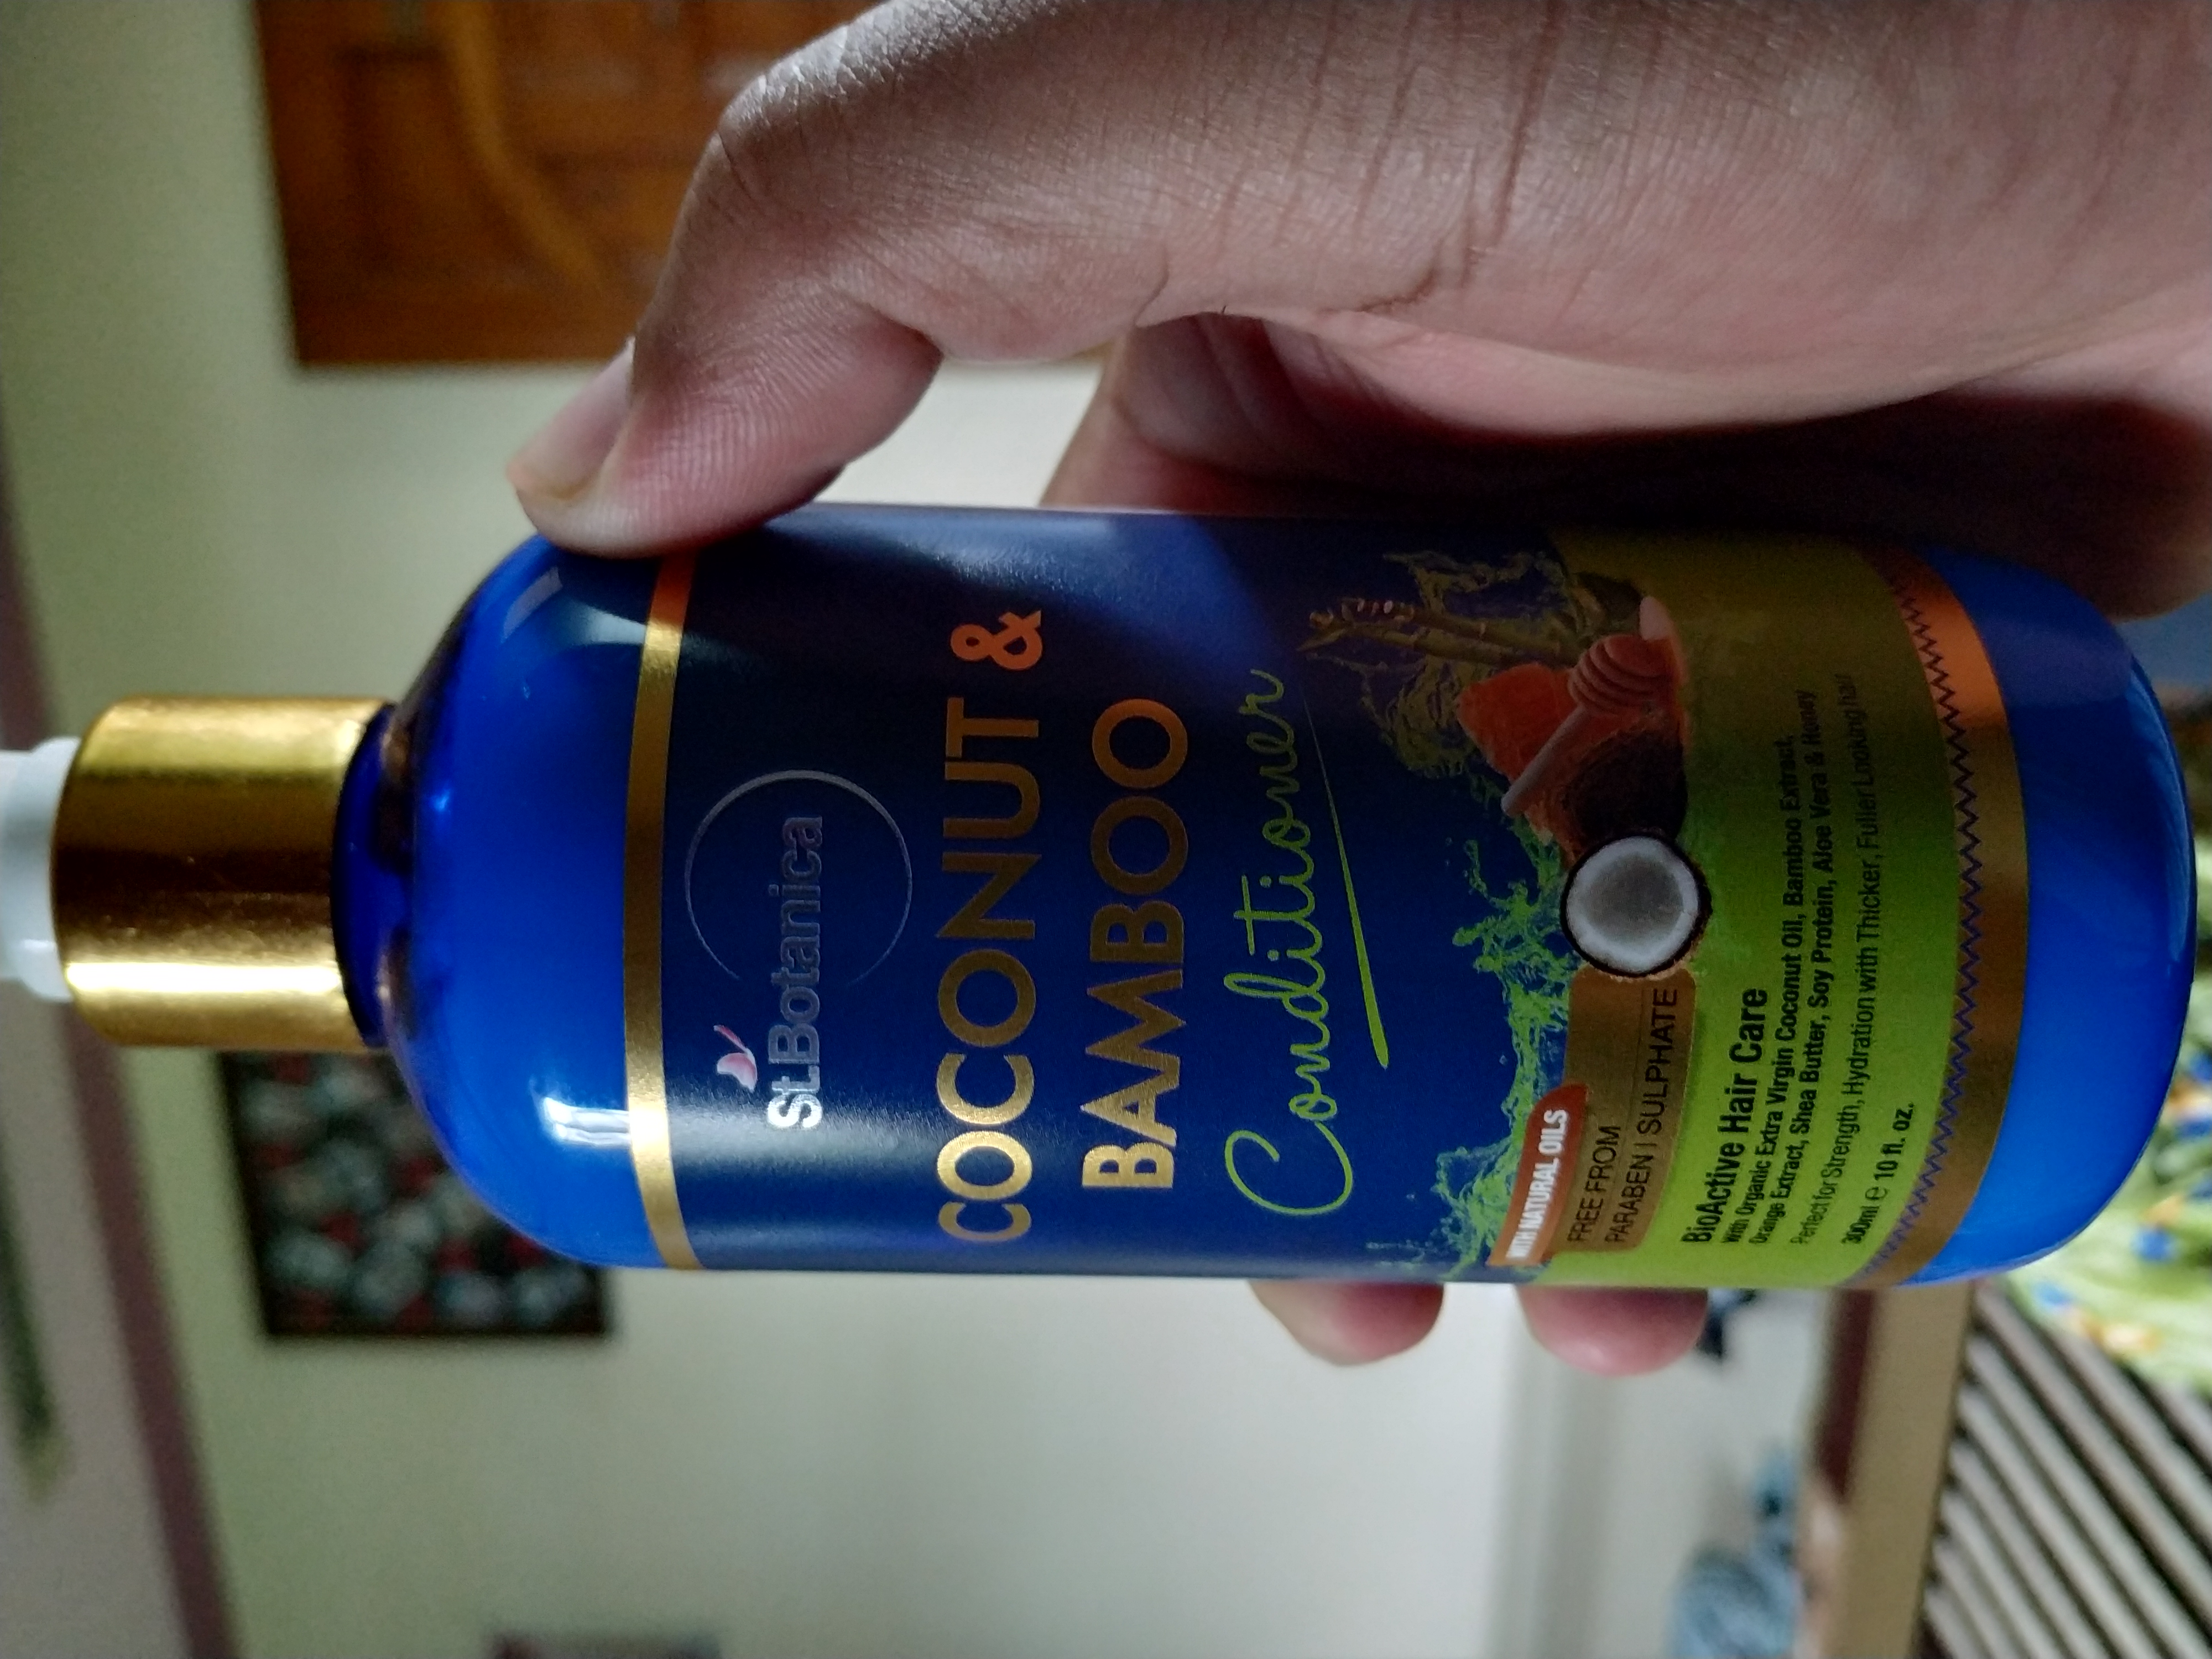 St.Botanica Coconut & Bamboo Hair Conditioner-Really good for Dry Hairs-By fudophobia